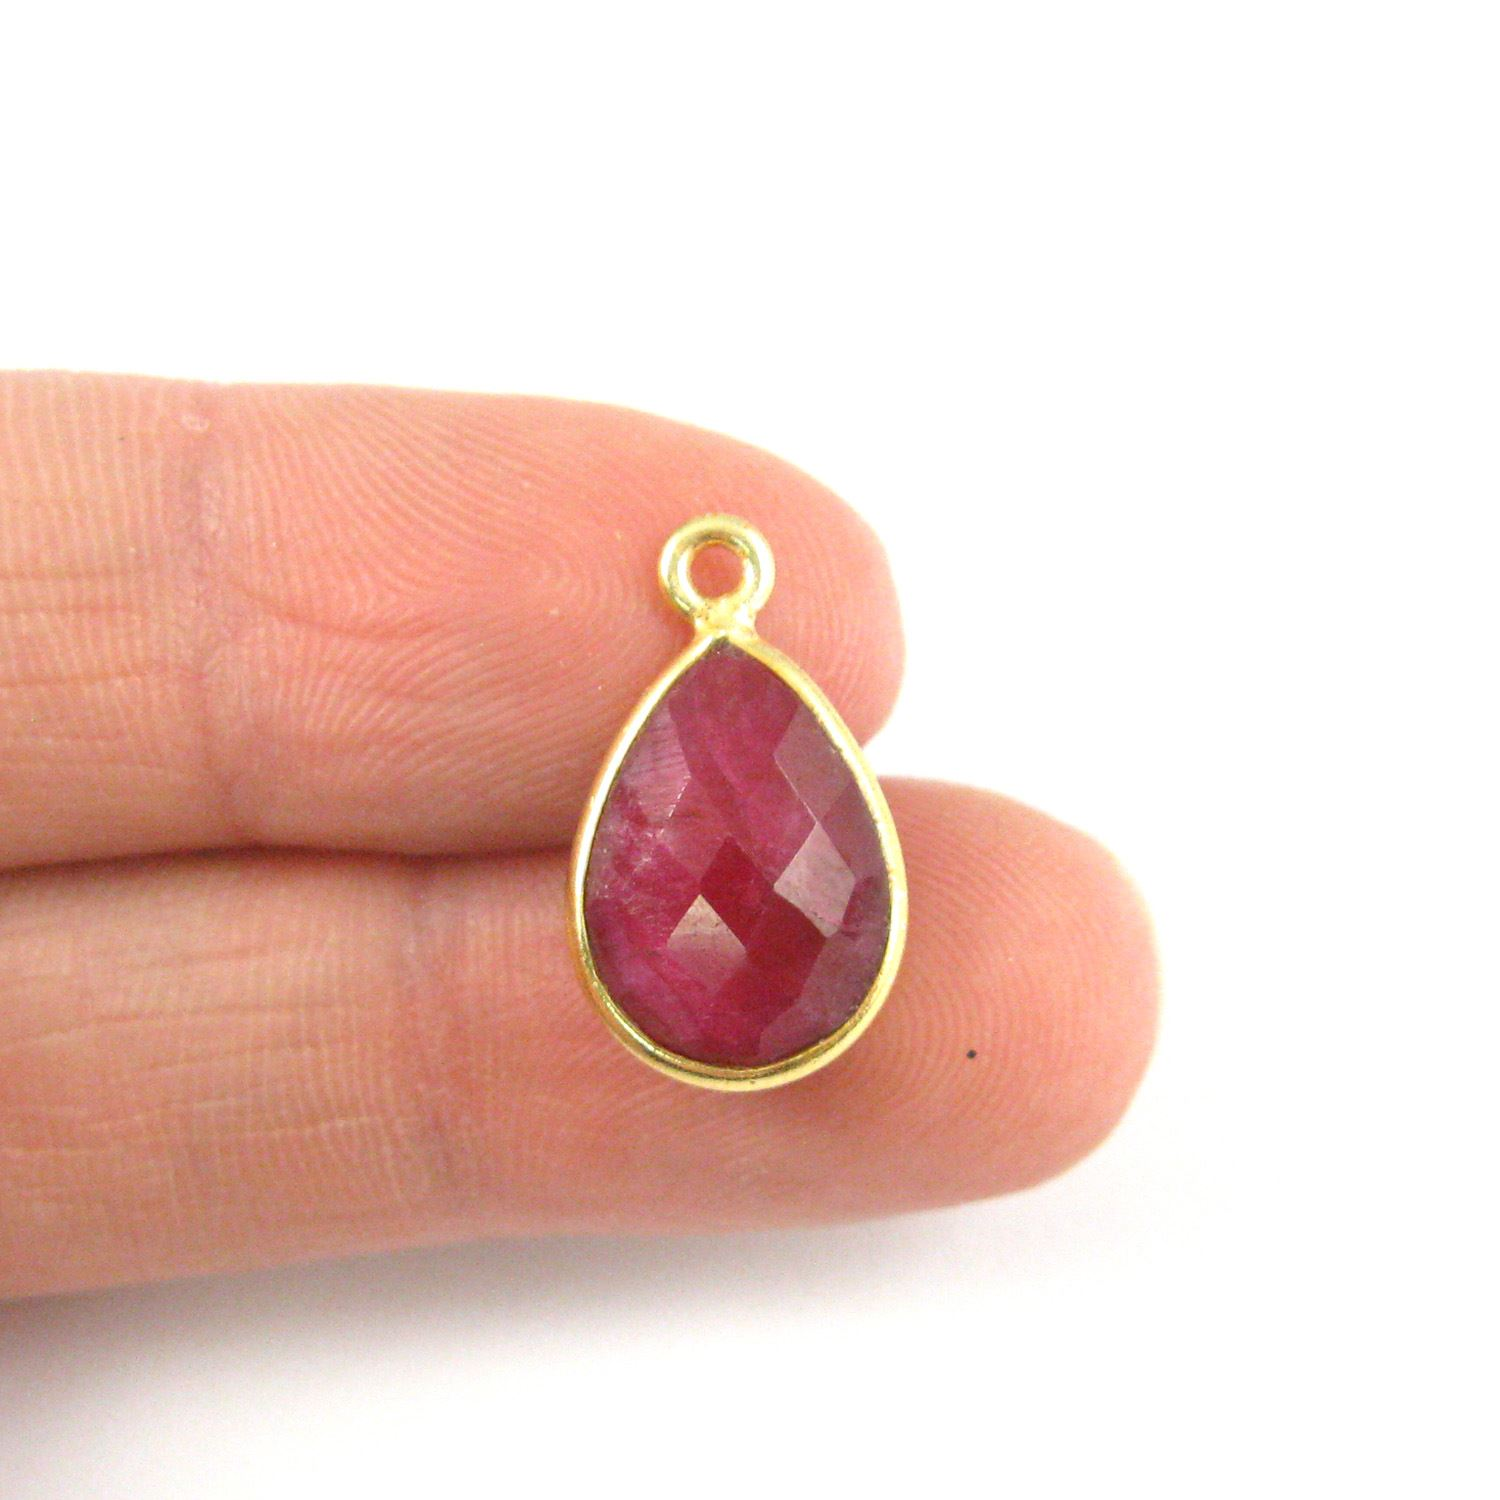 Bezel Gemstone Pendant - 10x14mm Faceted Small Teardop Shape -Dyed Ruby  (Sold per 2 pieces)